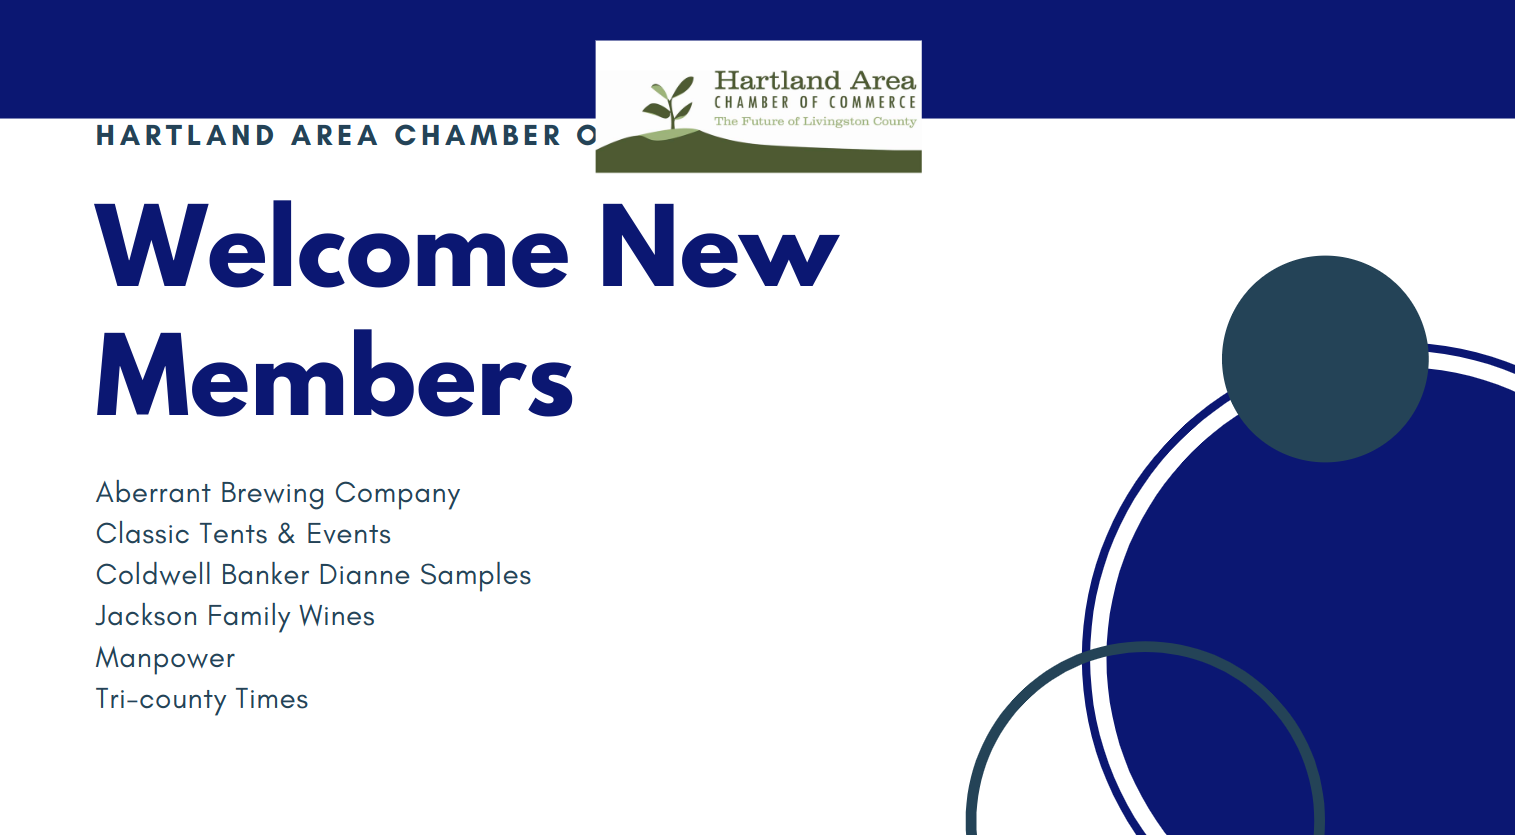 Hartland Area Chamber of Commerce Welcomes New Members in May